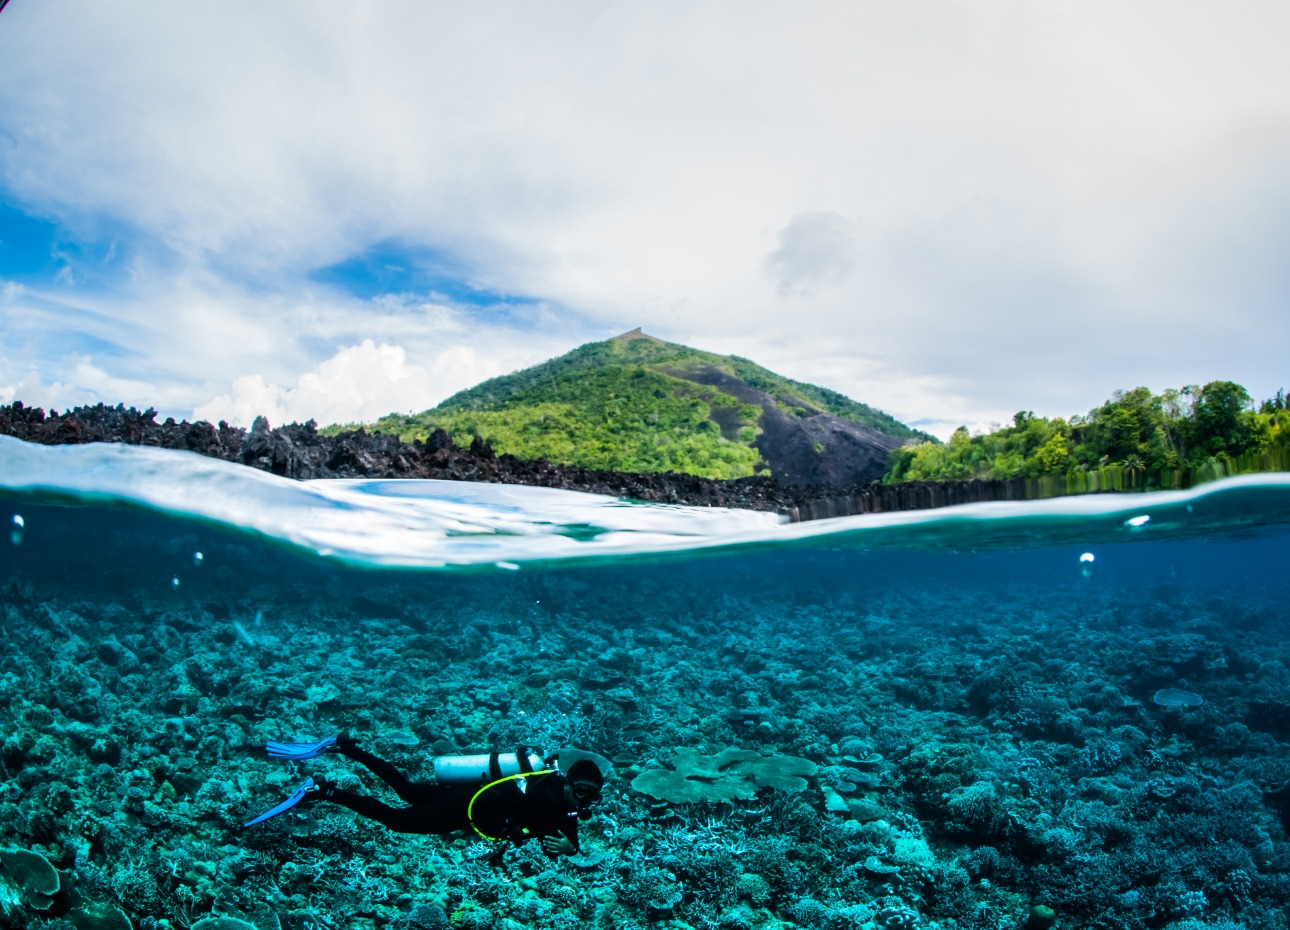 Scuba diver captured in under over photo in Indonesia with mountain backdrop